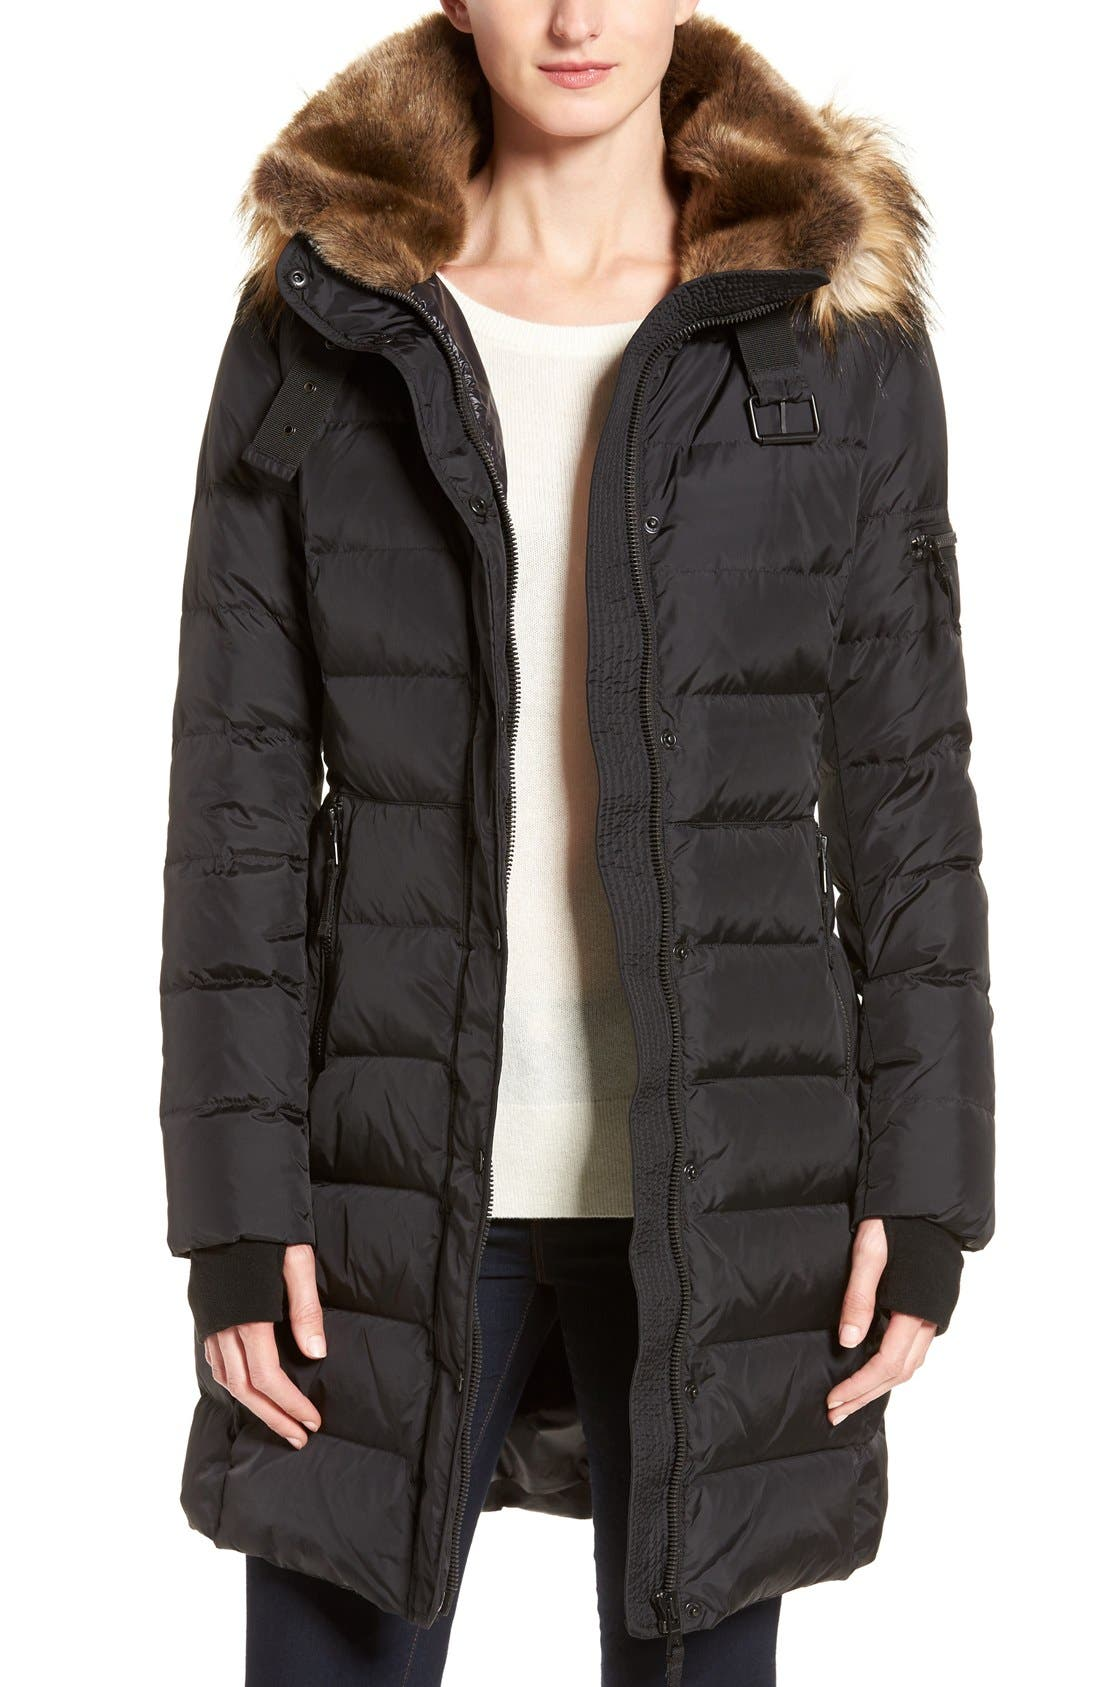 Main Image - S13 'Uptown' Quilted Coat with Faux Fur Trim